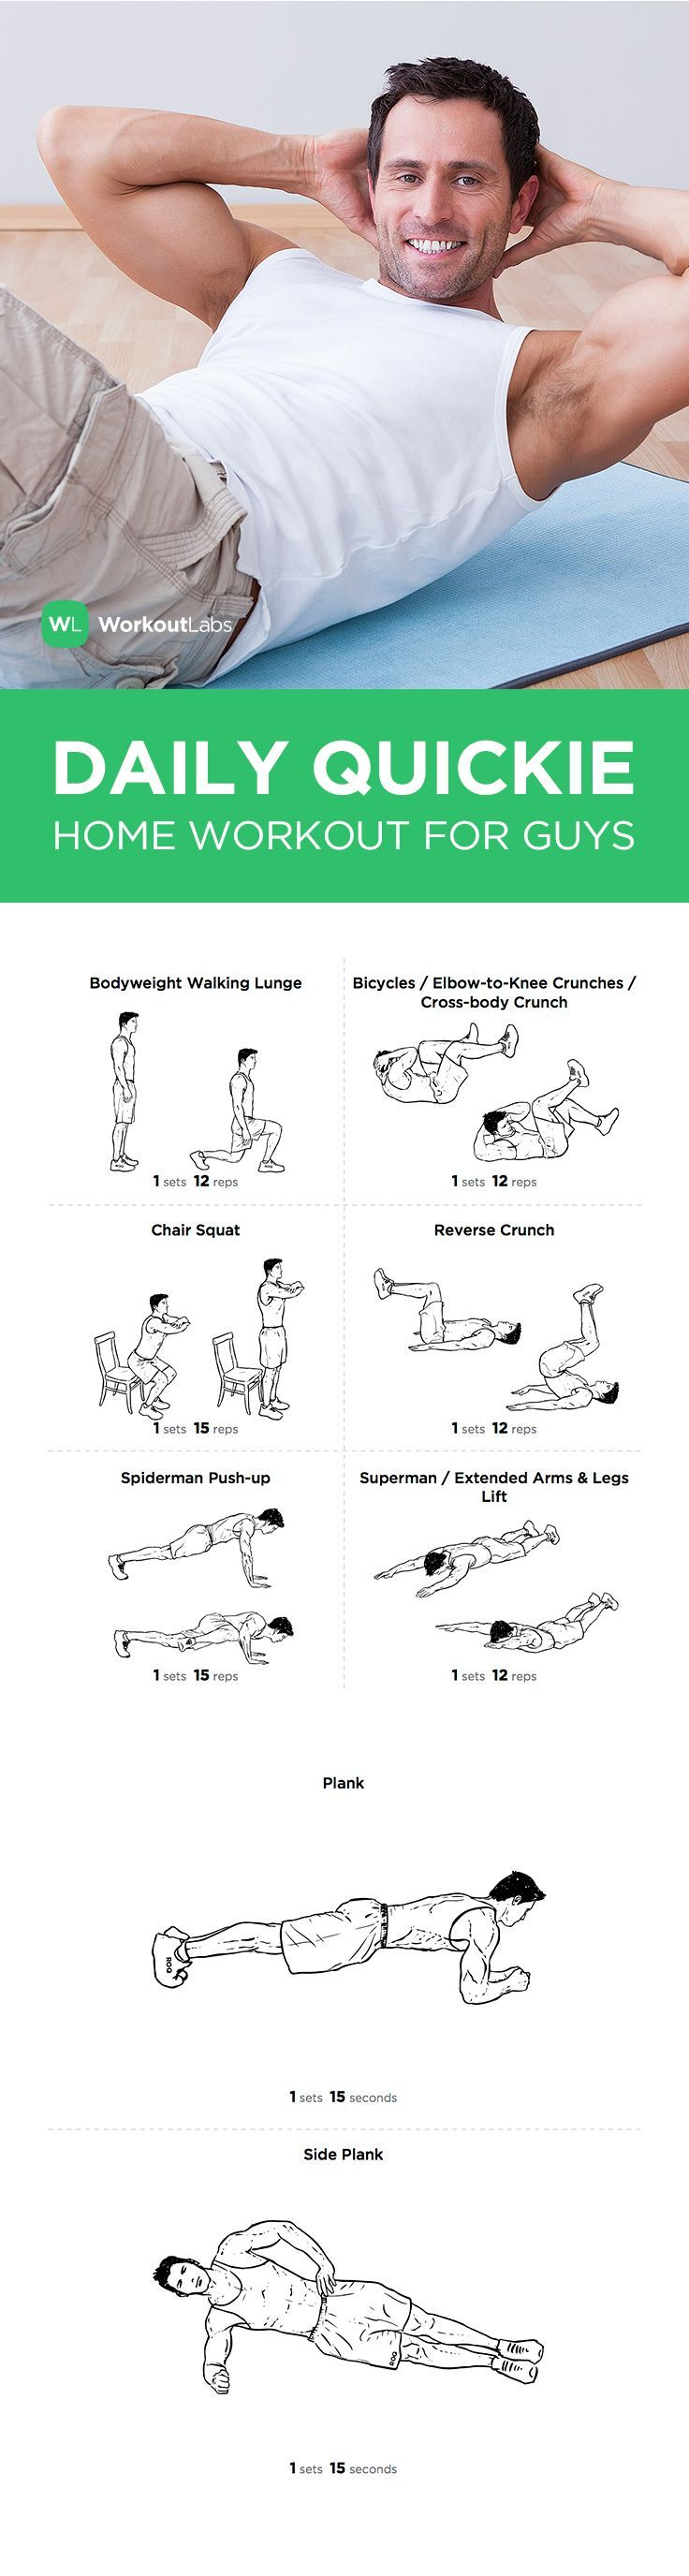 this mini workout plan for both men and women can help you